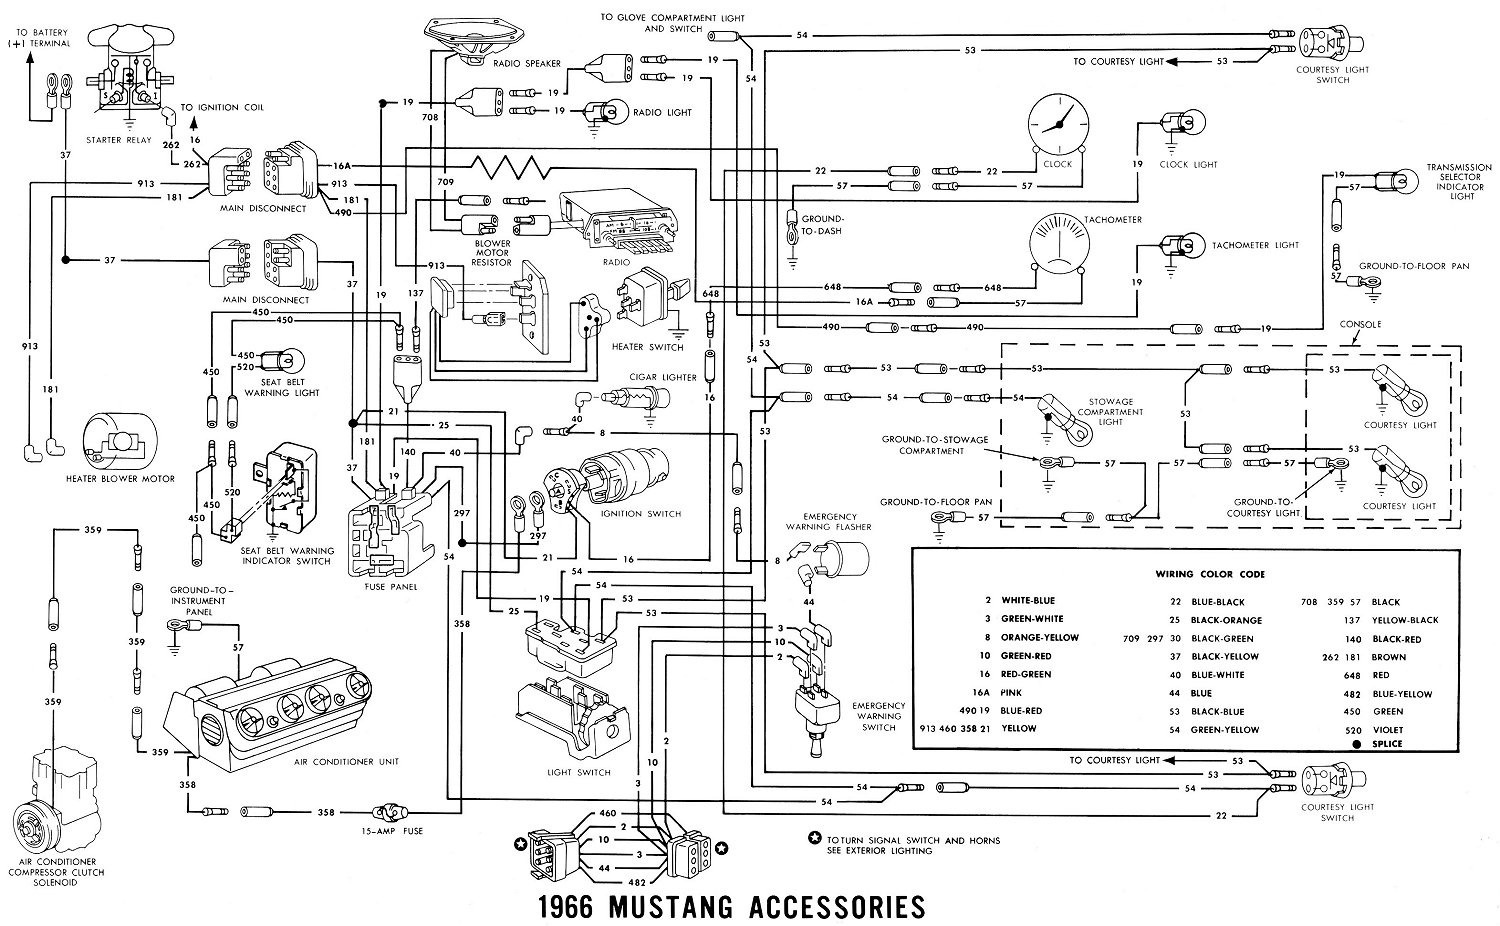 66 Mustang Convertible Wiring Harness Auto Electrical Diagram 730n Vintage Diagrams